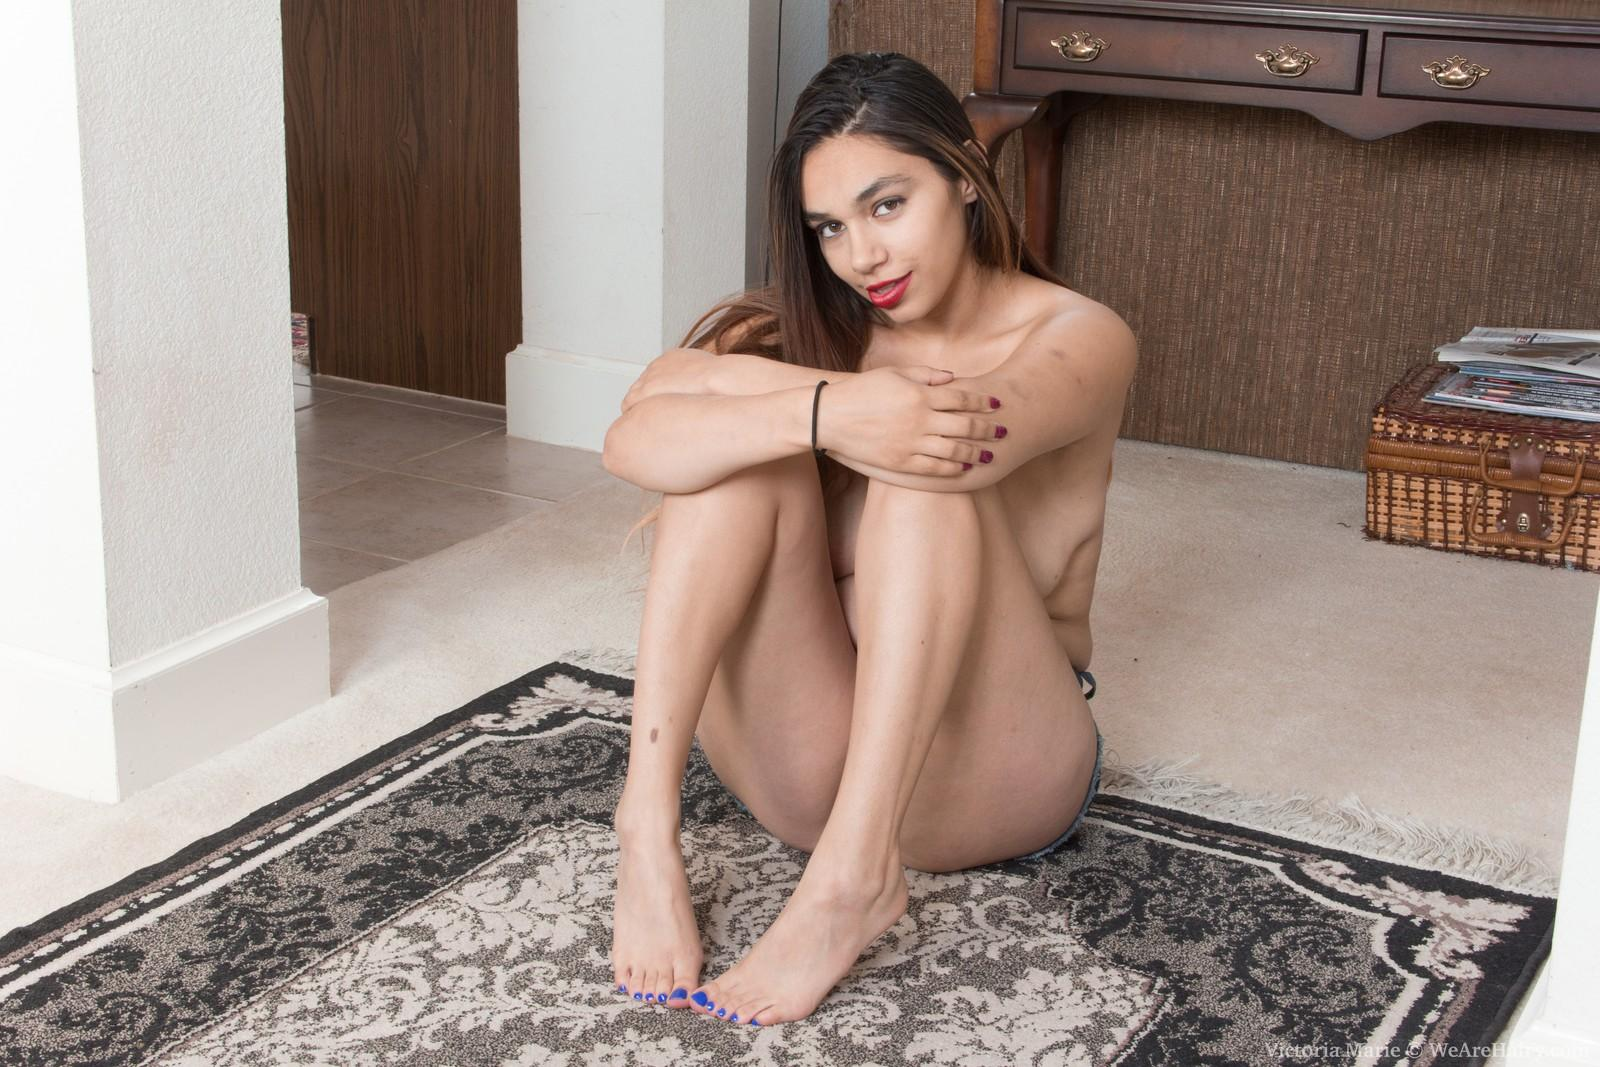 Big-boobed brown-haired amateur Victoria Marie revealing hairy beaver underneath cut-offs